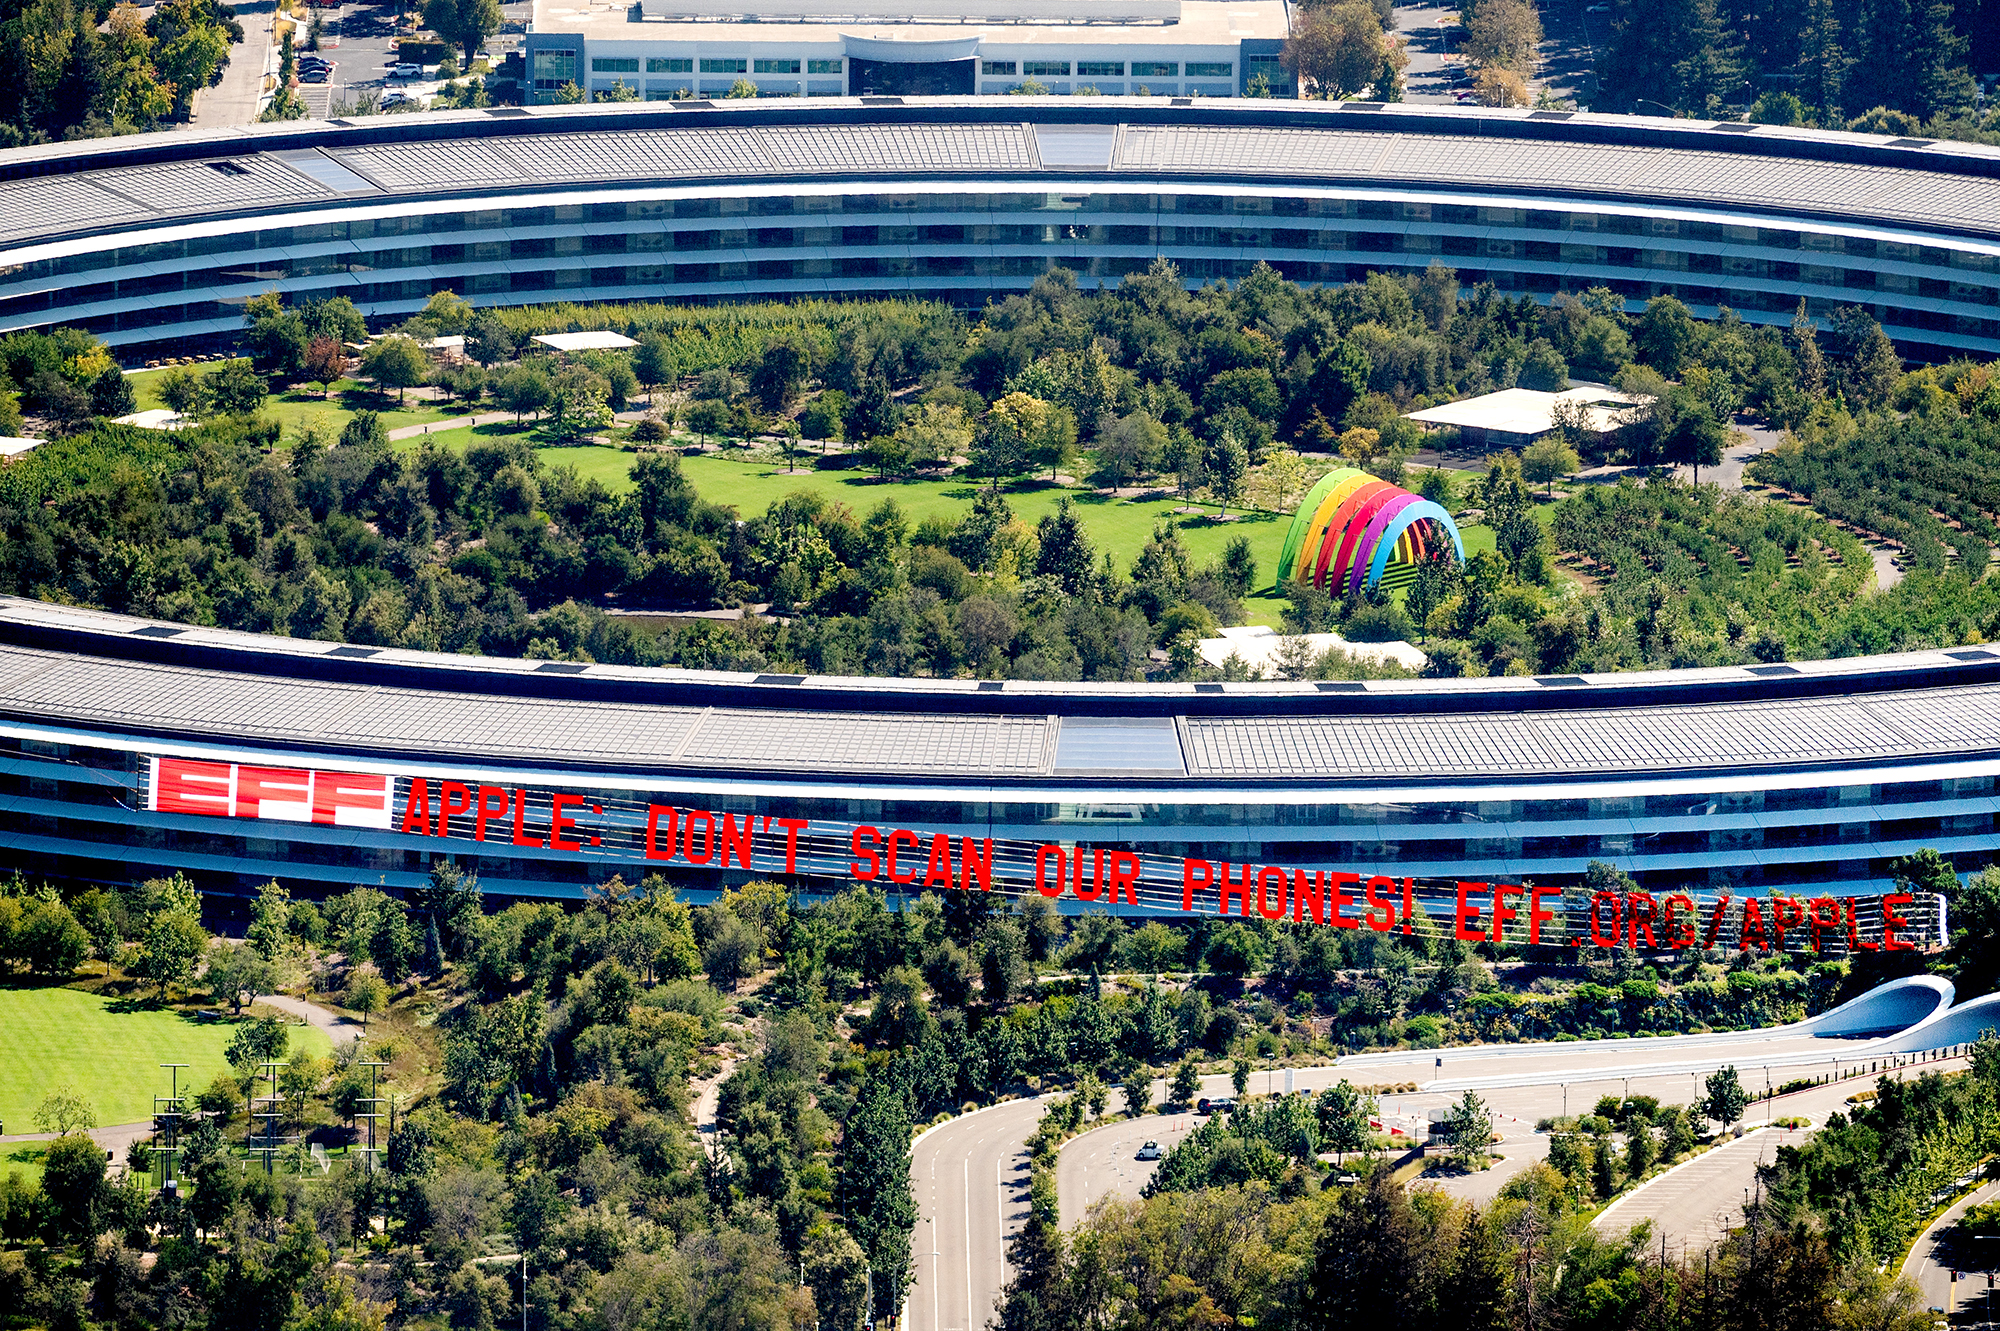 Why EFF Flew a Plane Over Apple's Headquarters